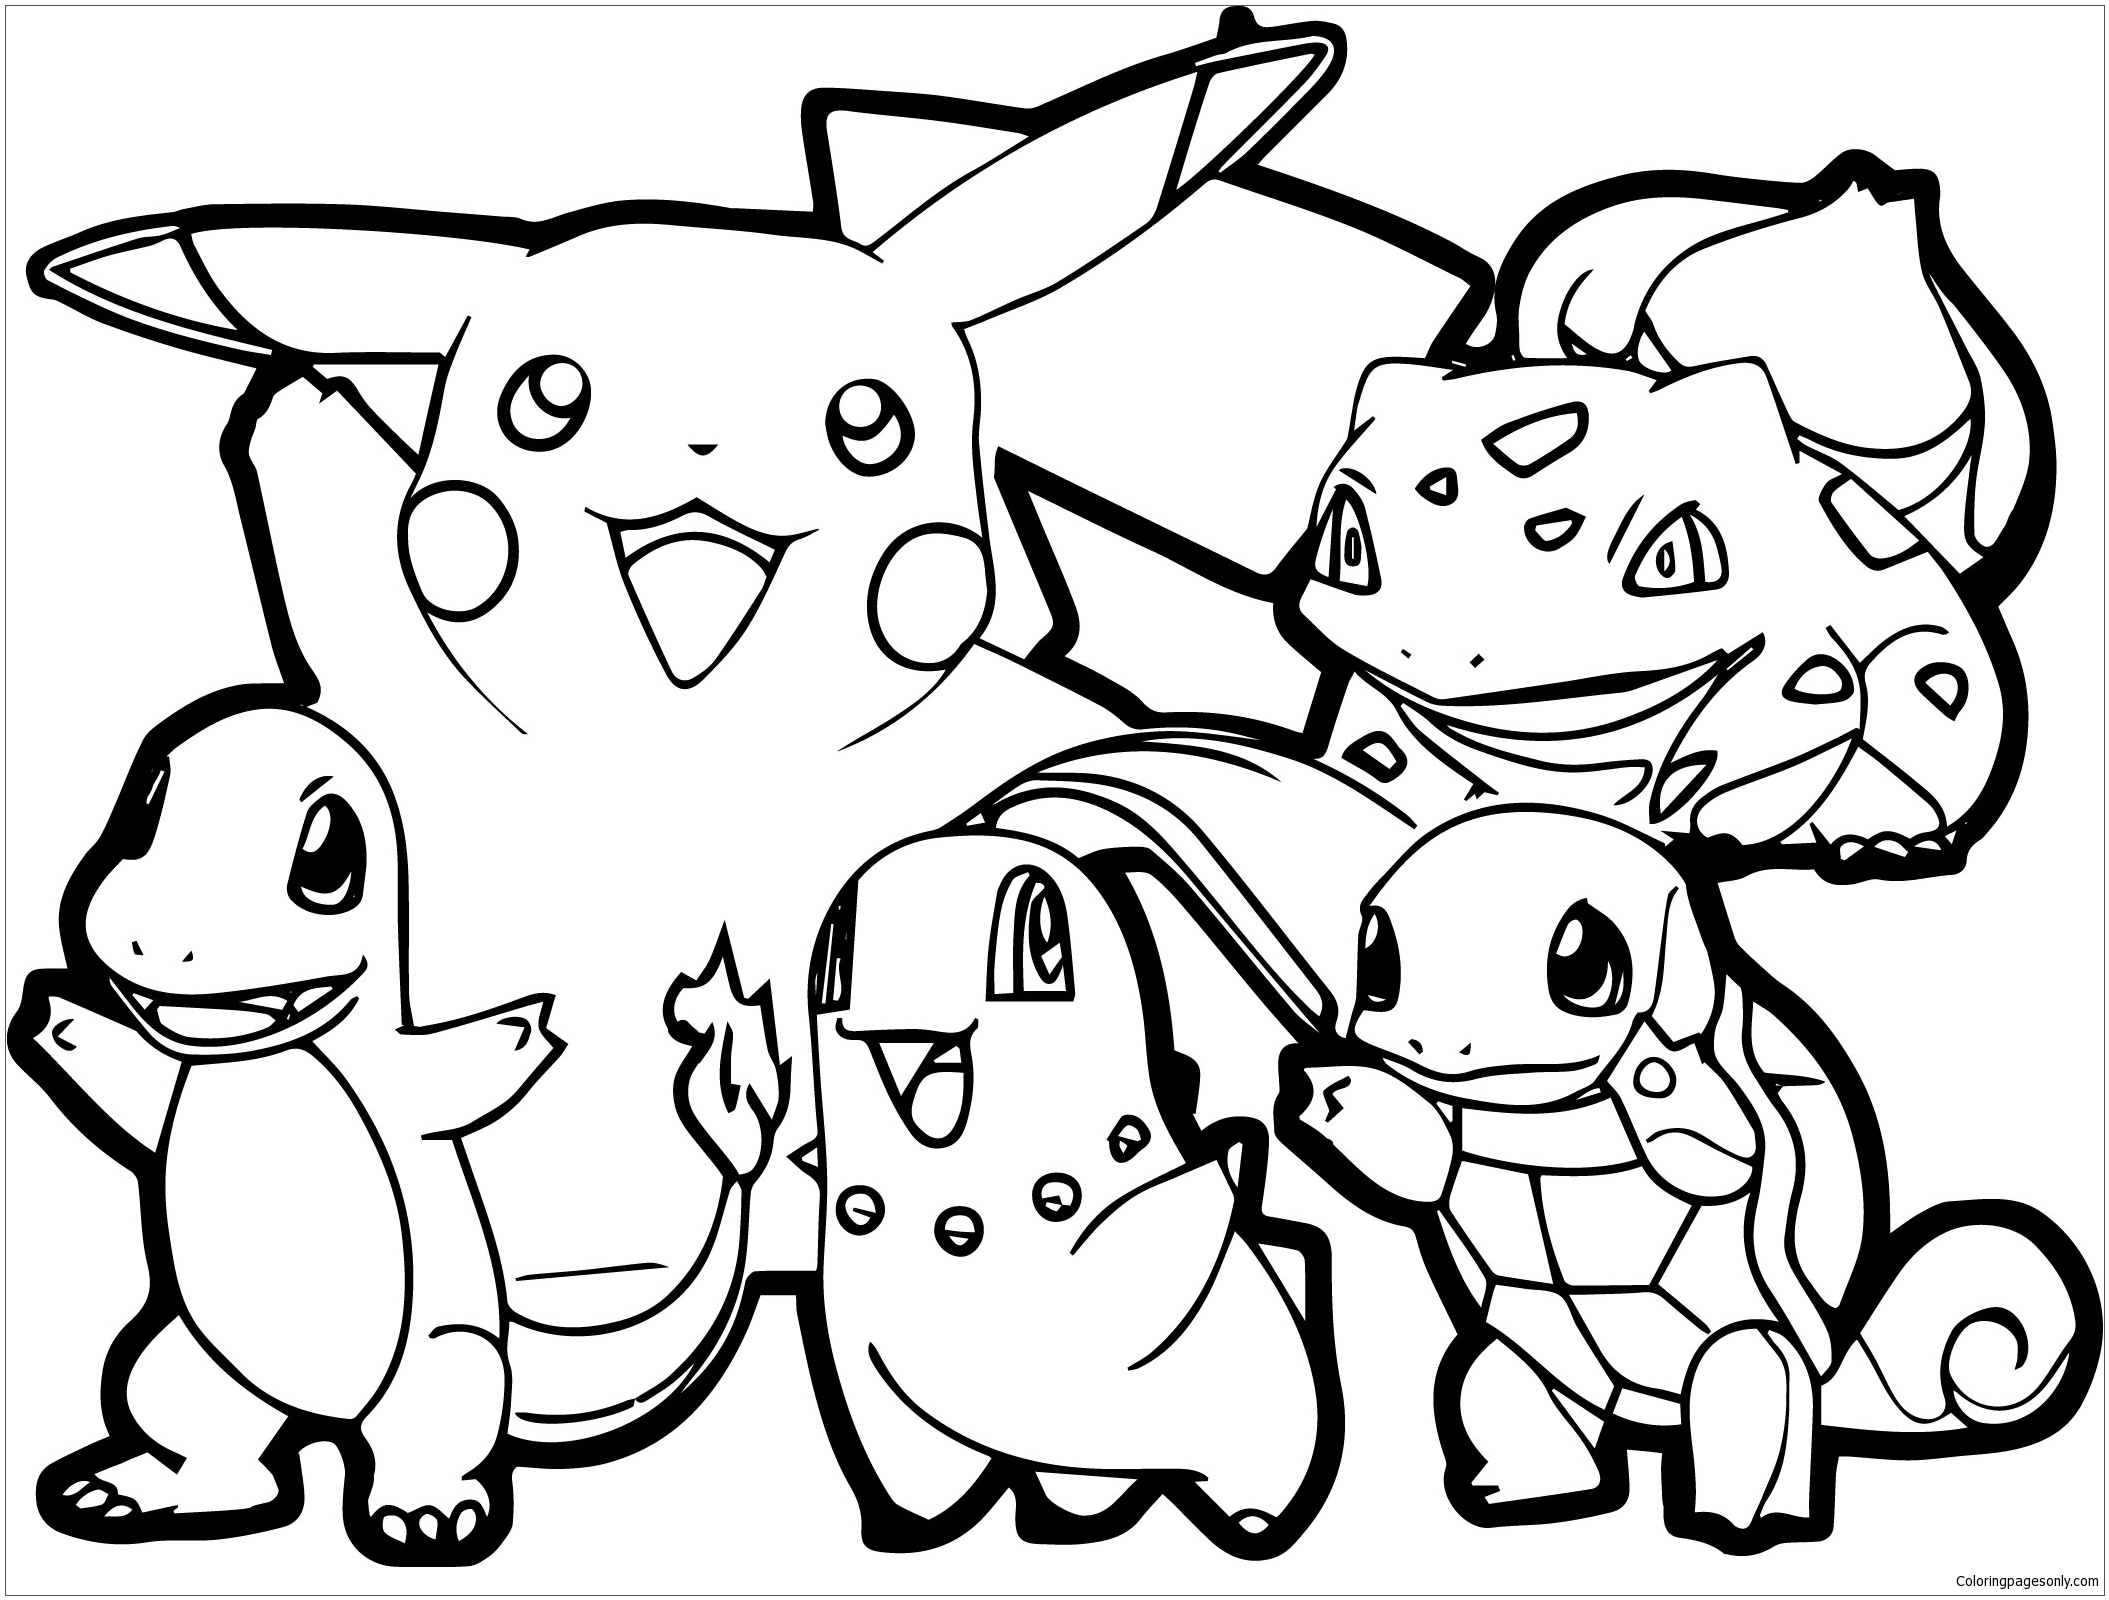 pokemon coloring pages pokemon lucario coloring pages download and print for free pokemon pages coloring